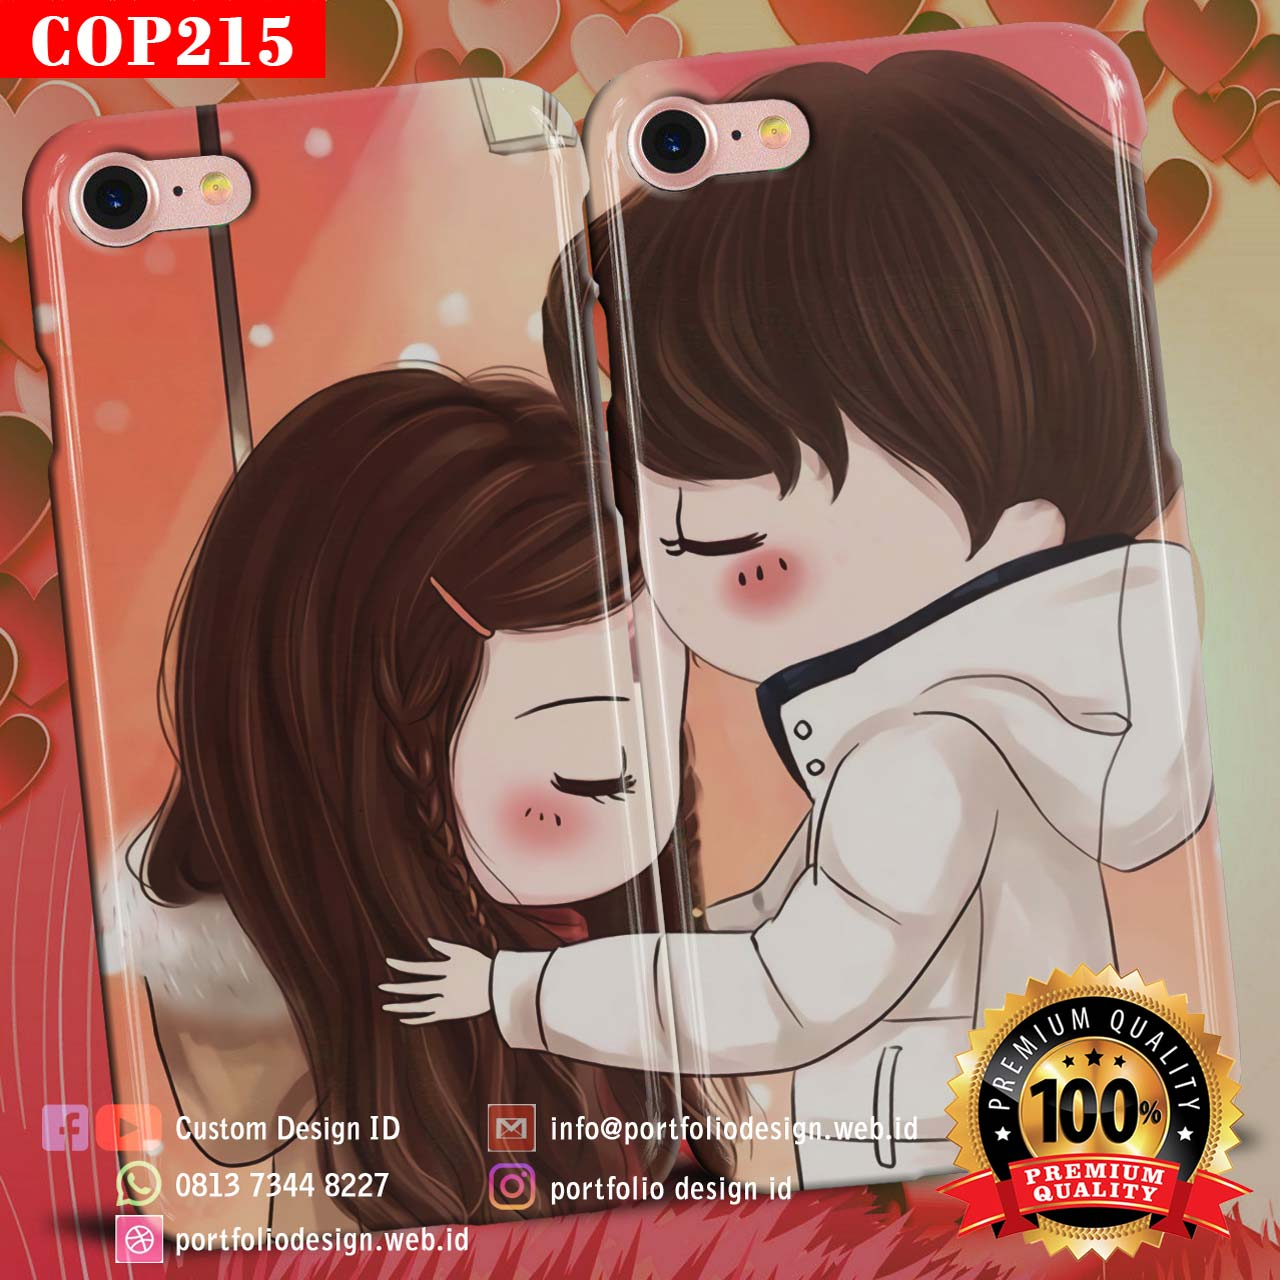 Casing Kartun Couple Muslim Romantis COP215 – Custom Desain